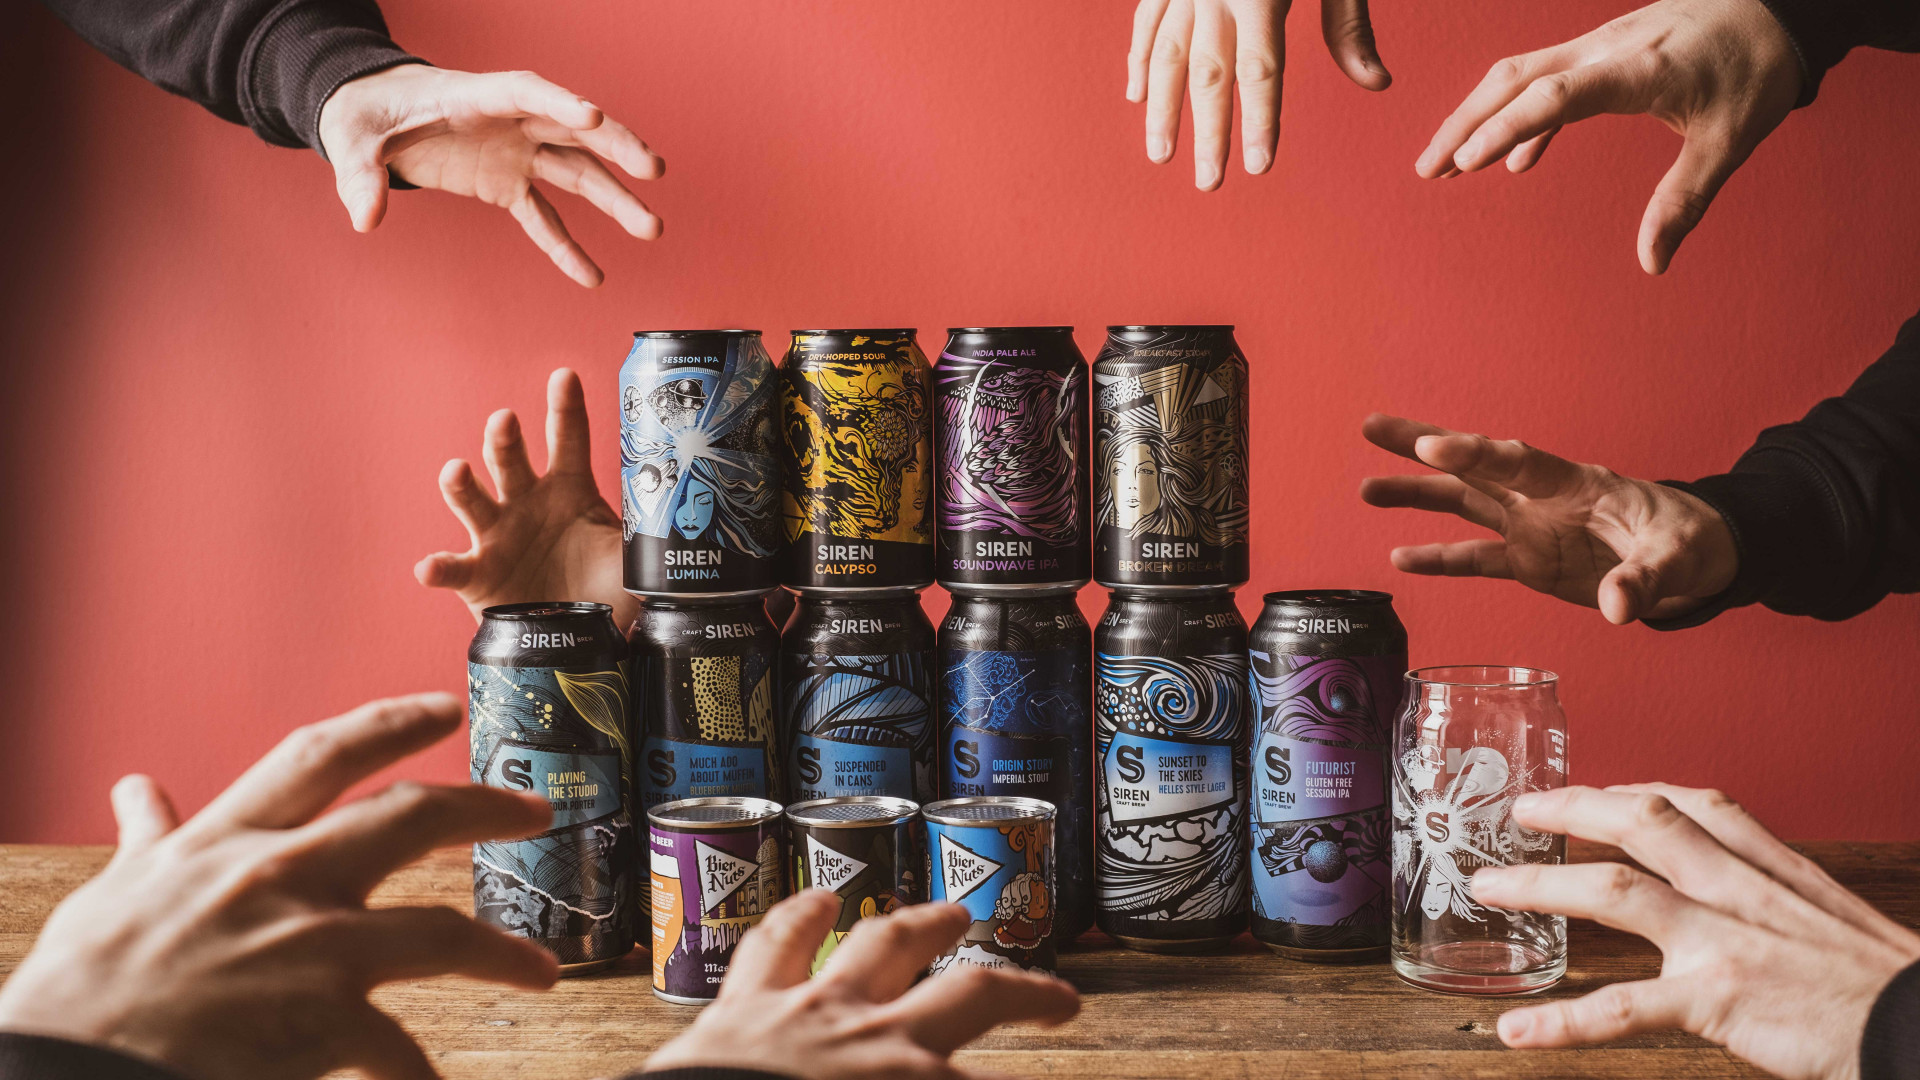 Siren Craft Brewing's flagship cans